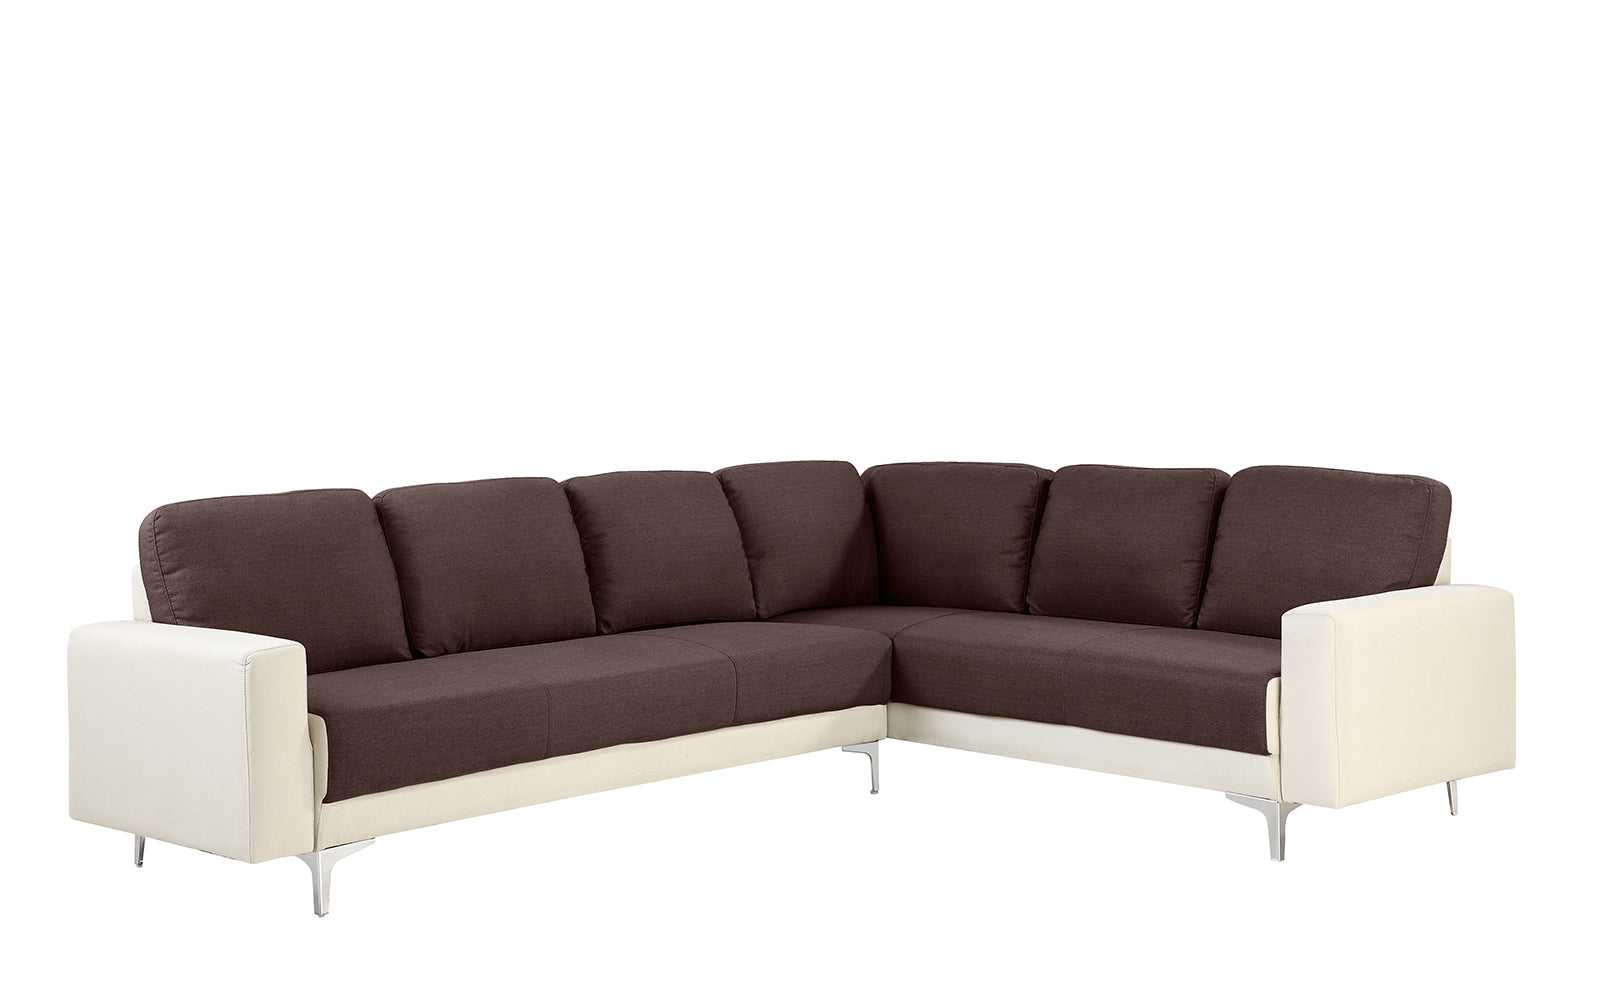 Luevano 2 Tone Linen Sectional Sofa